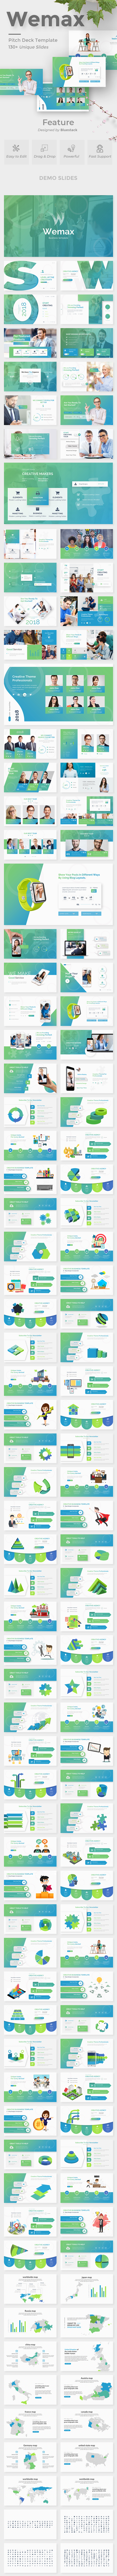 Wemax Pitch Deck Business Keynote Template - Business Keynote Templates